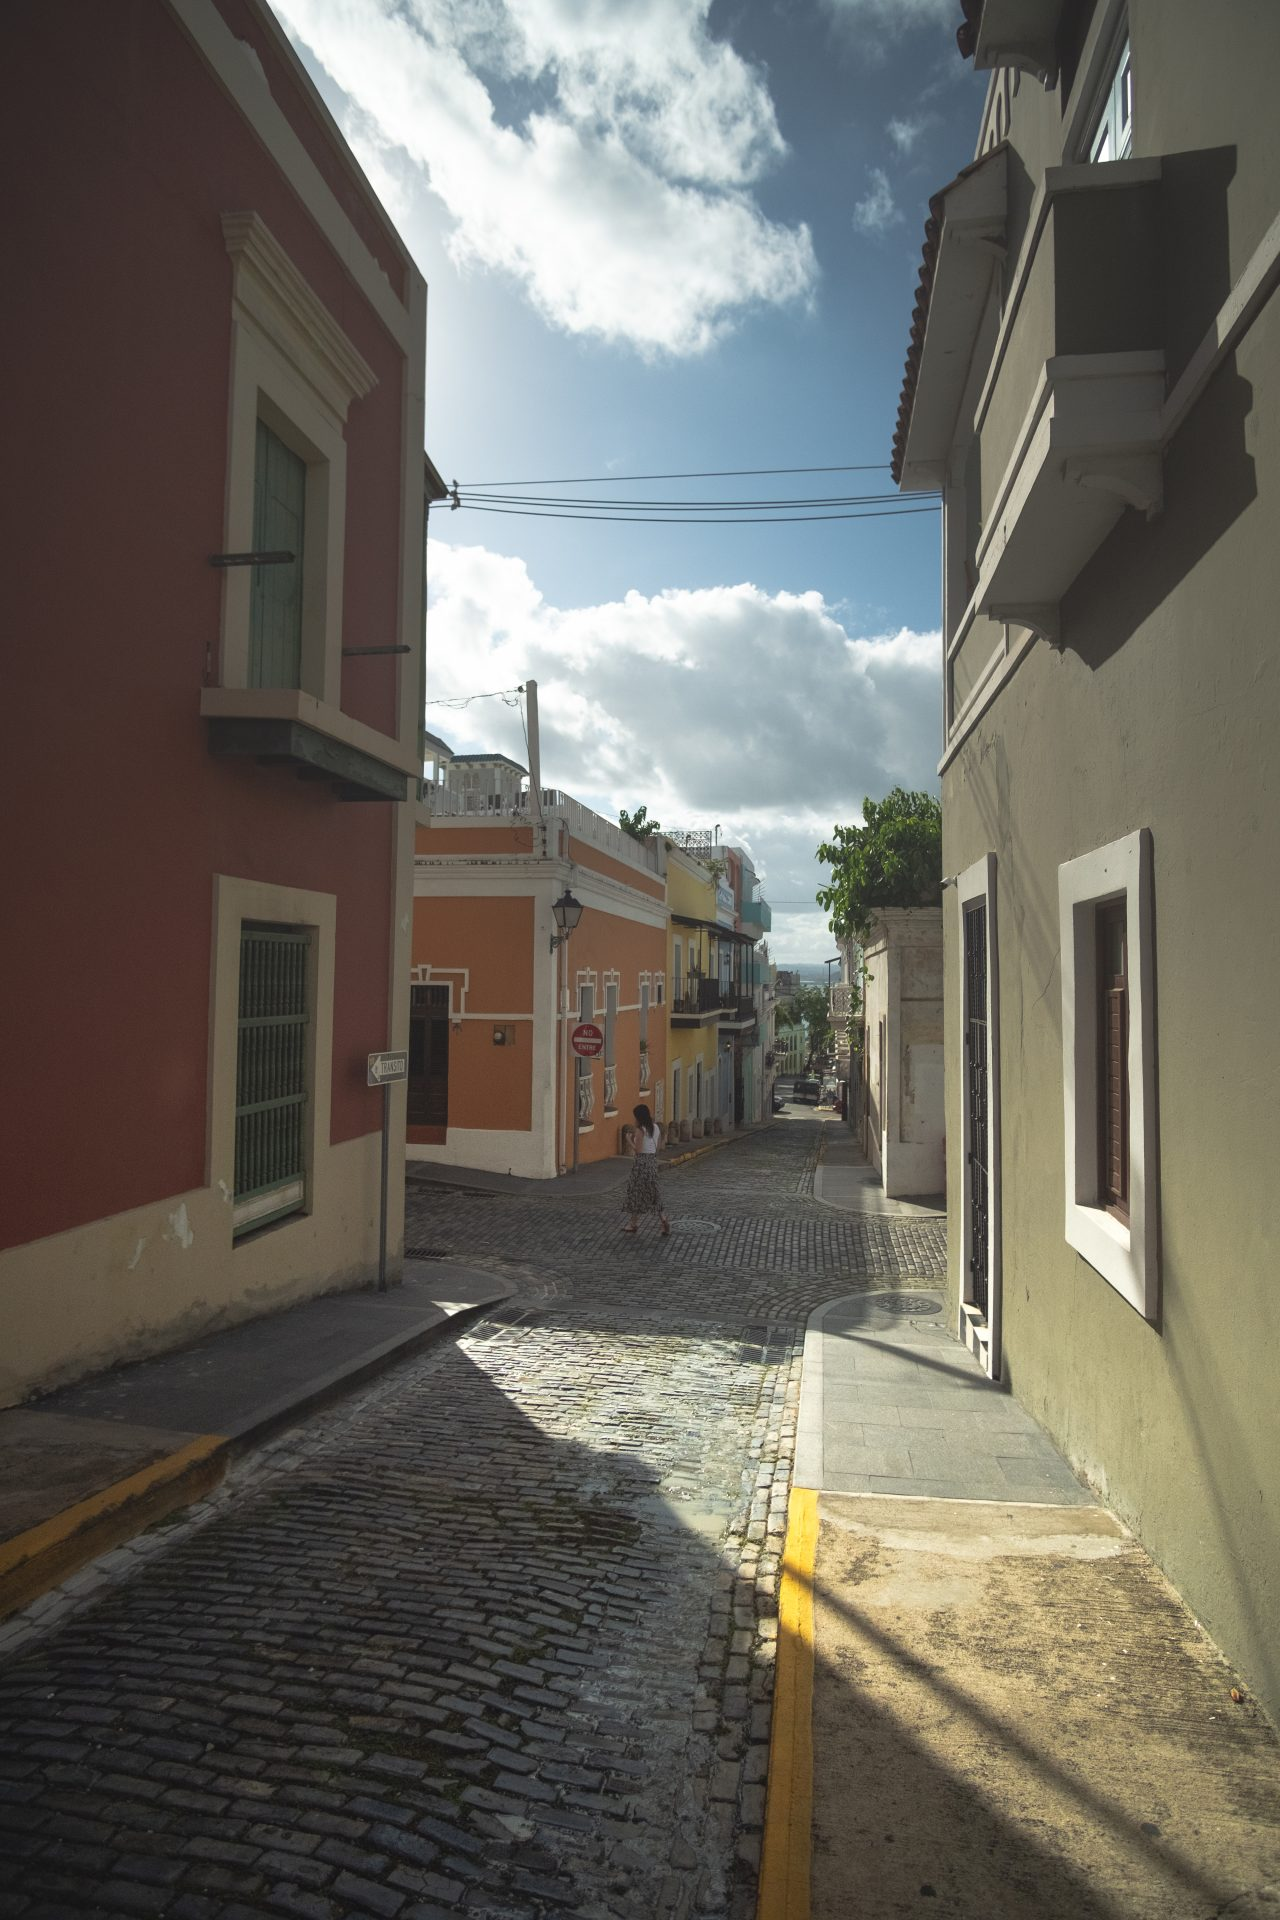 The streets of San Juan photo by Jo Kassis